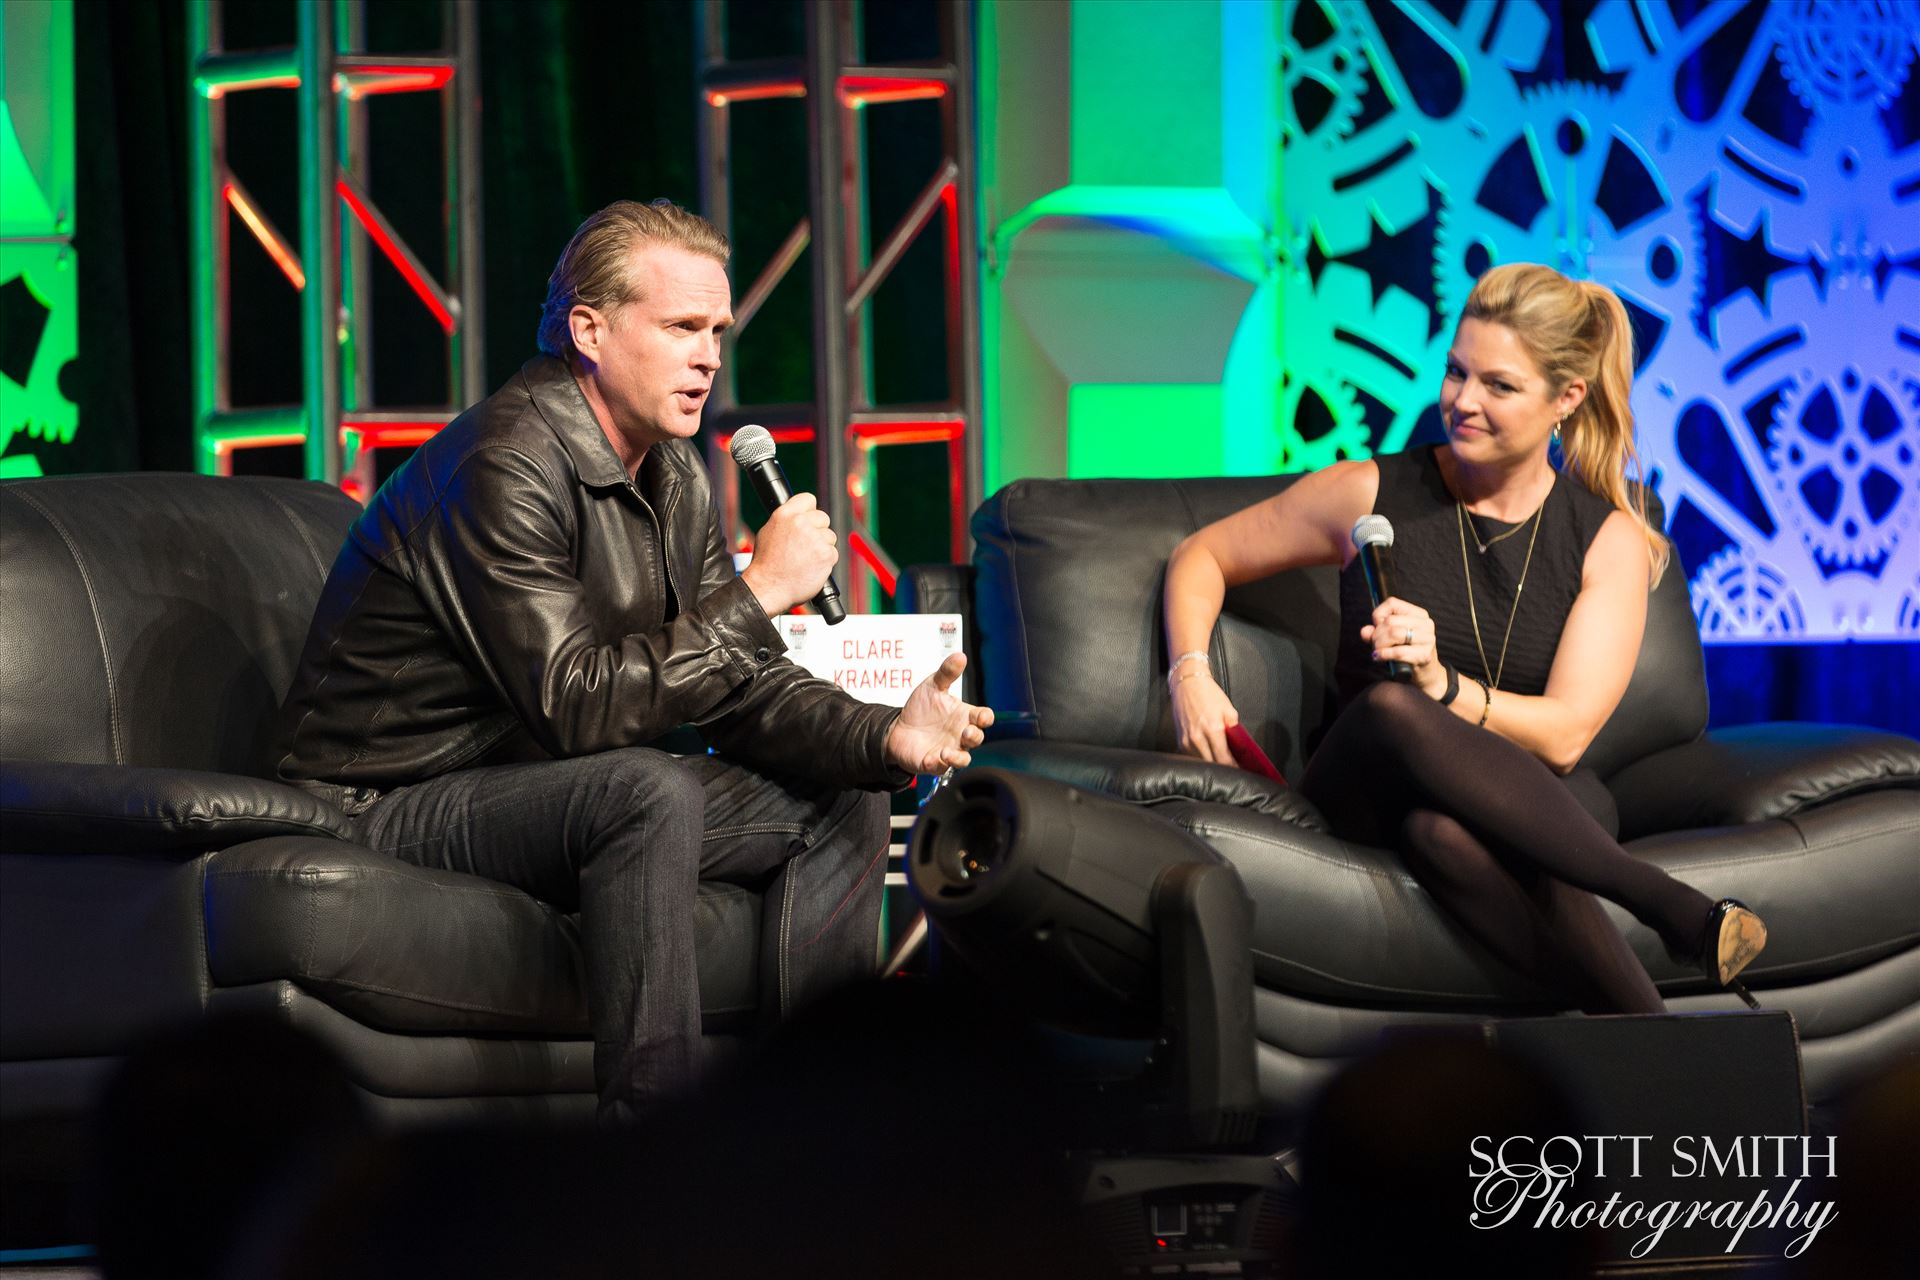 Denver Comic Con 2016 25 - Denver Comic Con 2016 at the Colorado Convention Center. Clare Kramer and Cary Elwes. by D Scott Smith